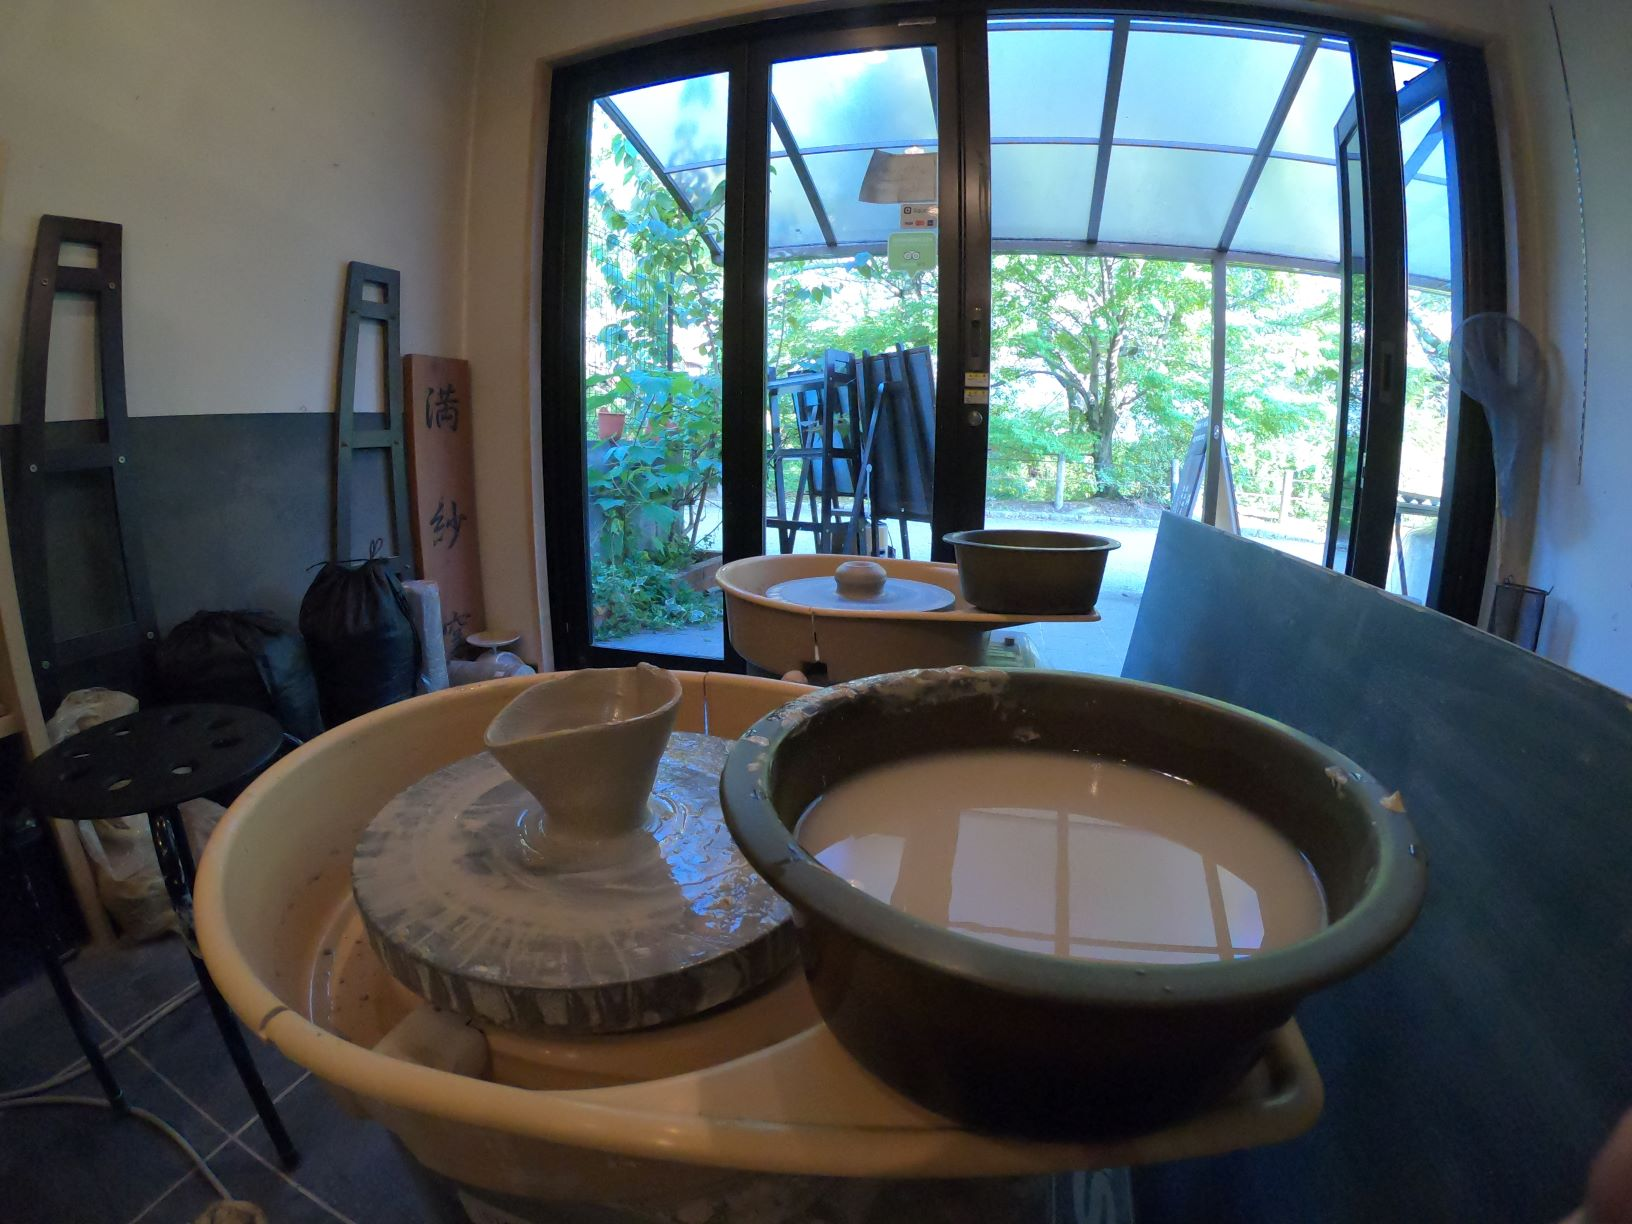 Pottery experience at Road of Philosophy / 陶艺体验 @哲学之道